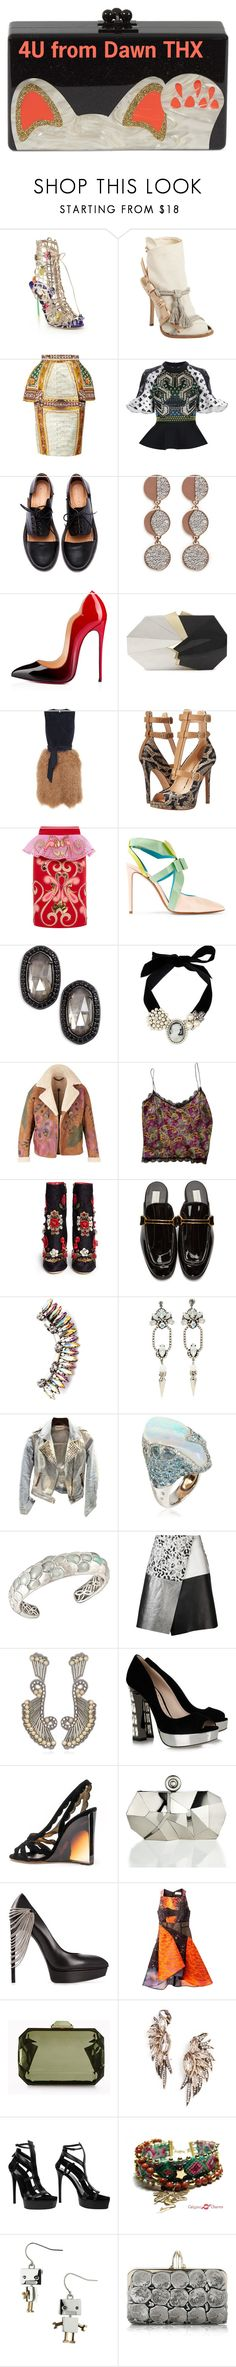 """THX & 4 U"" by dawn-lindenberg ❤ liked on Polyvore featuring Versus, Sophia Webster, Giuseppe Zanotti, Mary Katrantzou, Peter Pilotto, Balenciaga, Minimarket, Pamela Love, Christian Louboutin and Jill Haber"